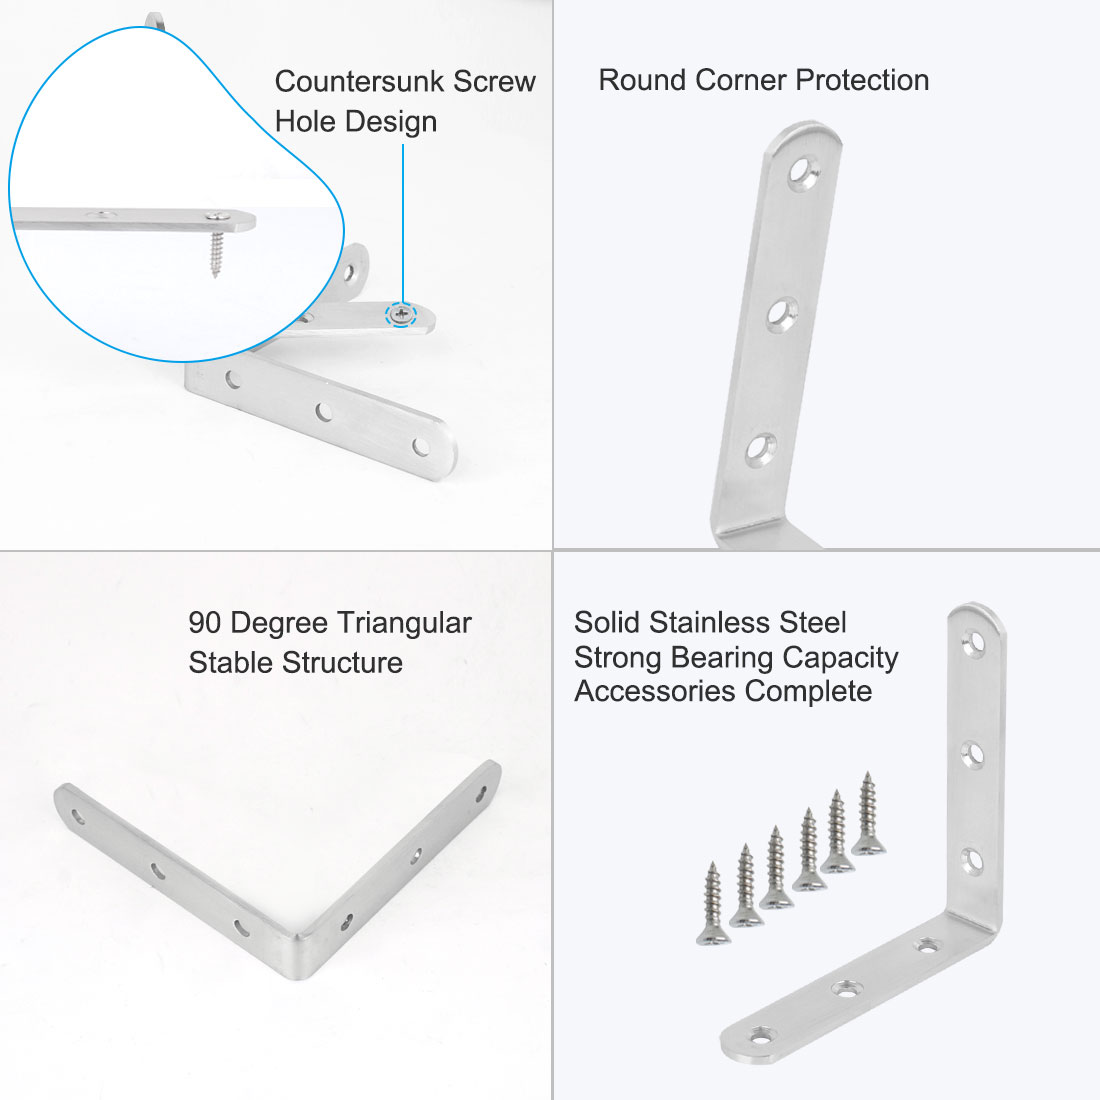 Angle Bracket Stainless Steel Brace Fastener Support w Screws 100 x 100mm, 6pcs - image 5 of 7